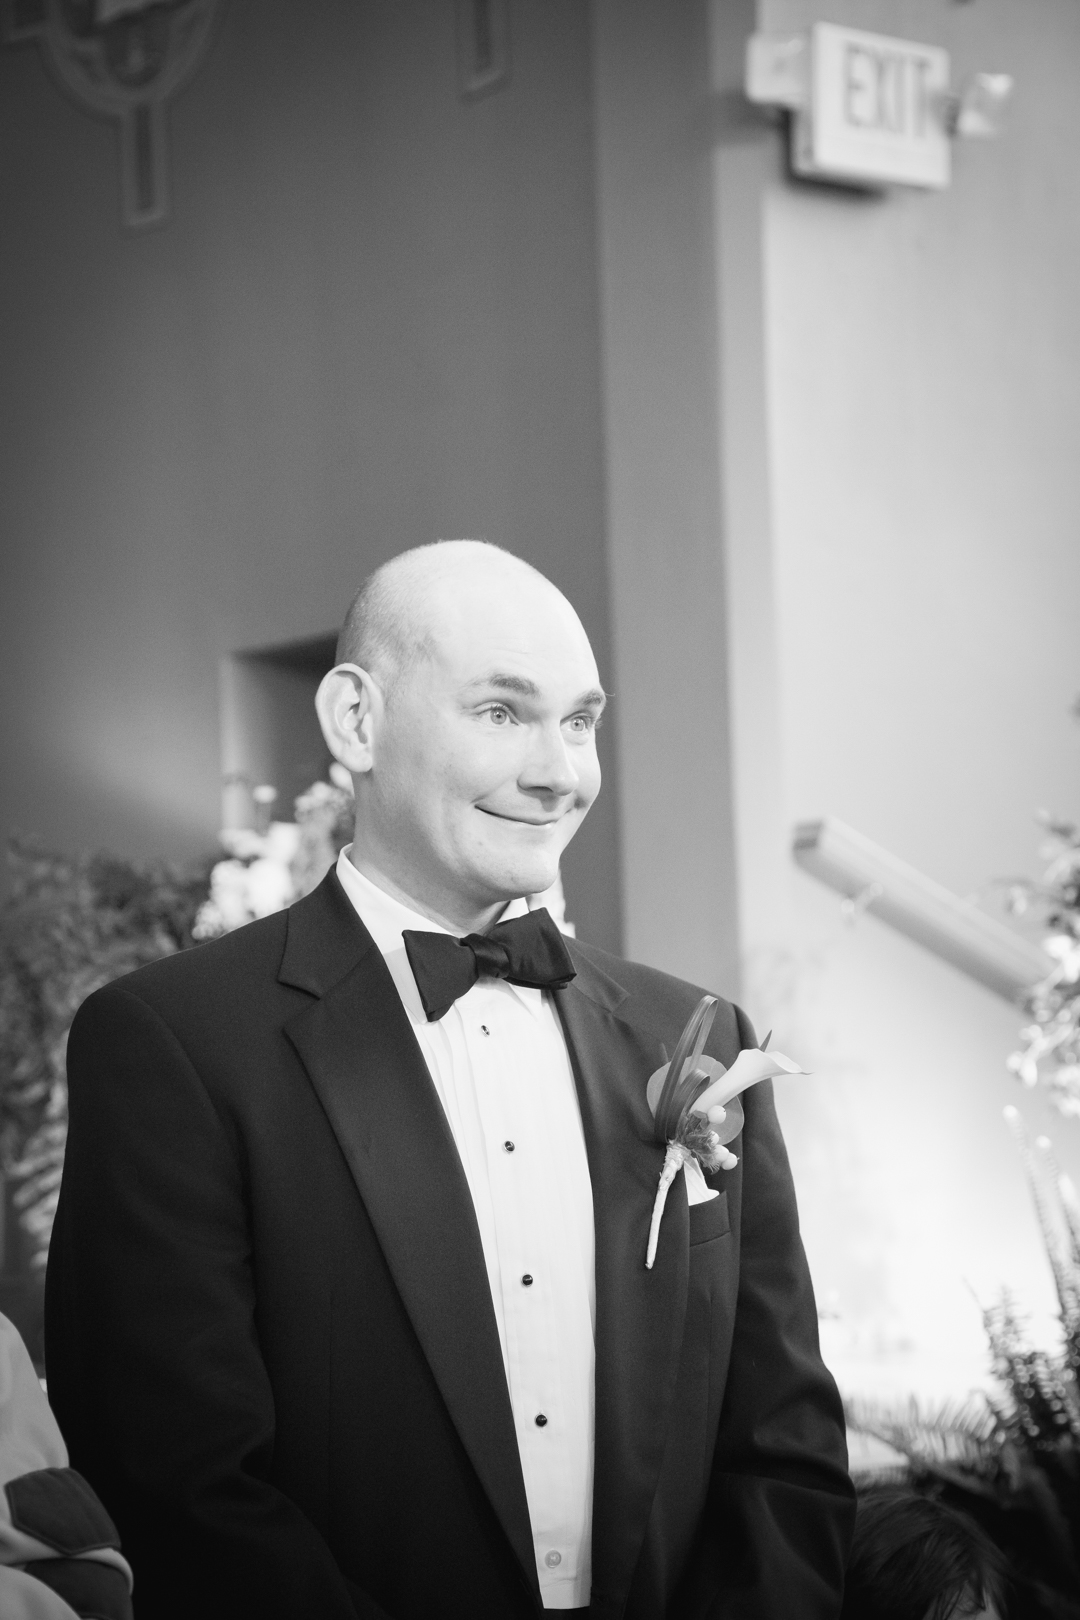 quite possibly one of my favorite groom reactions of all times.